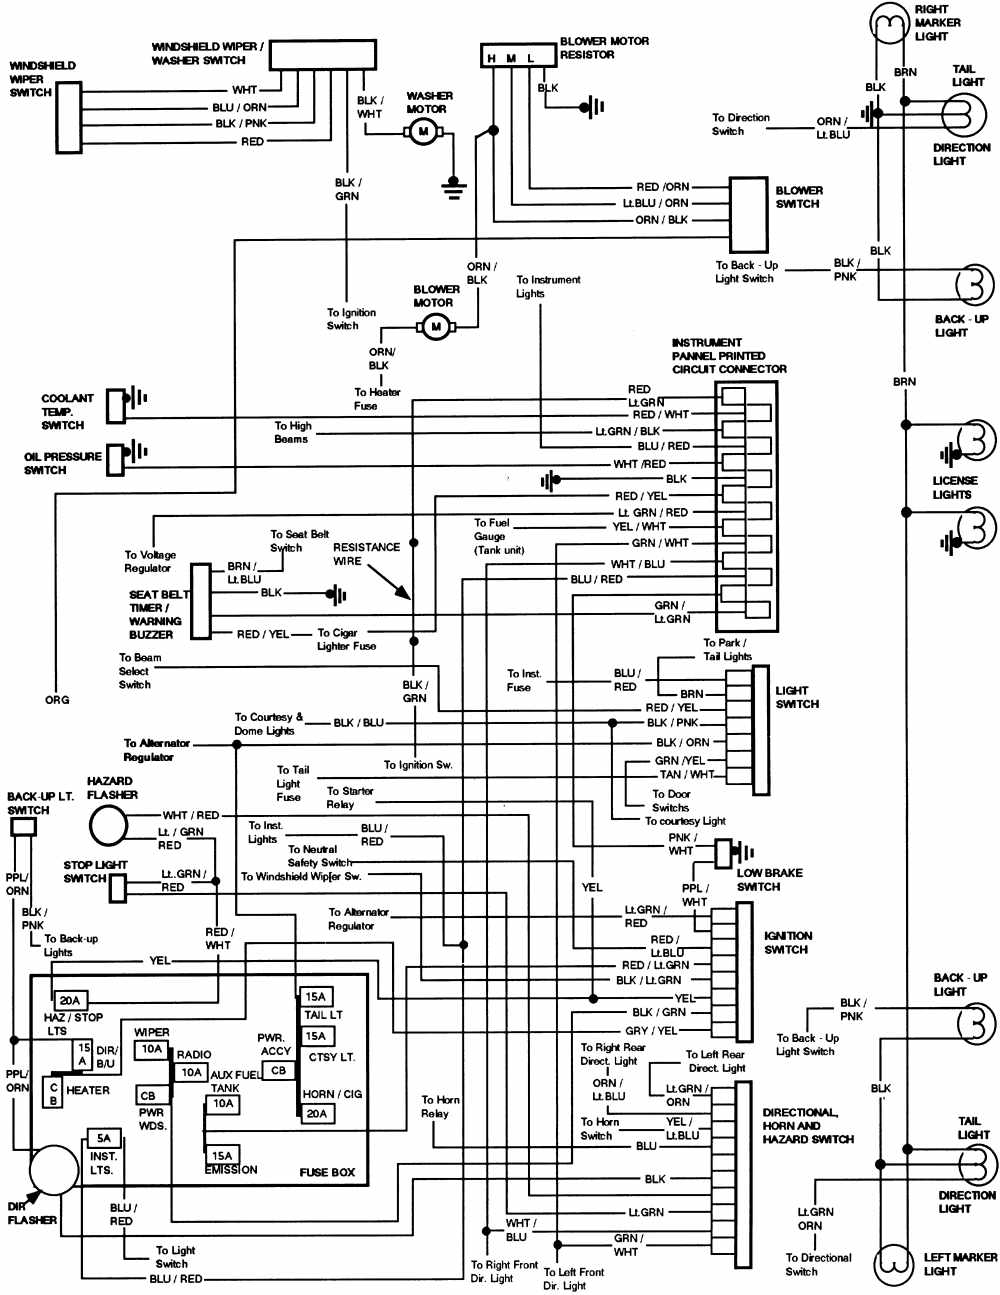 2011 ford f350 radio wiring diagram